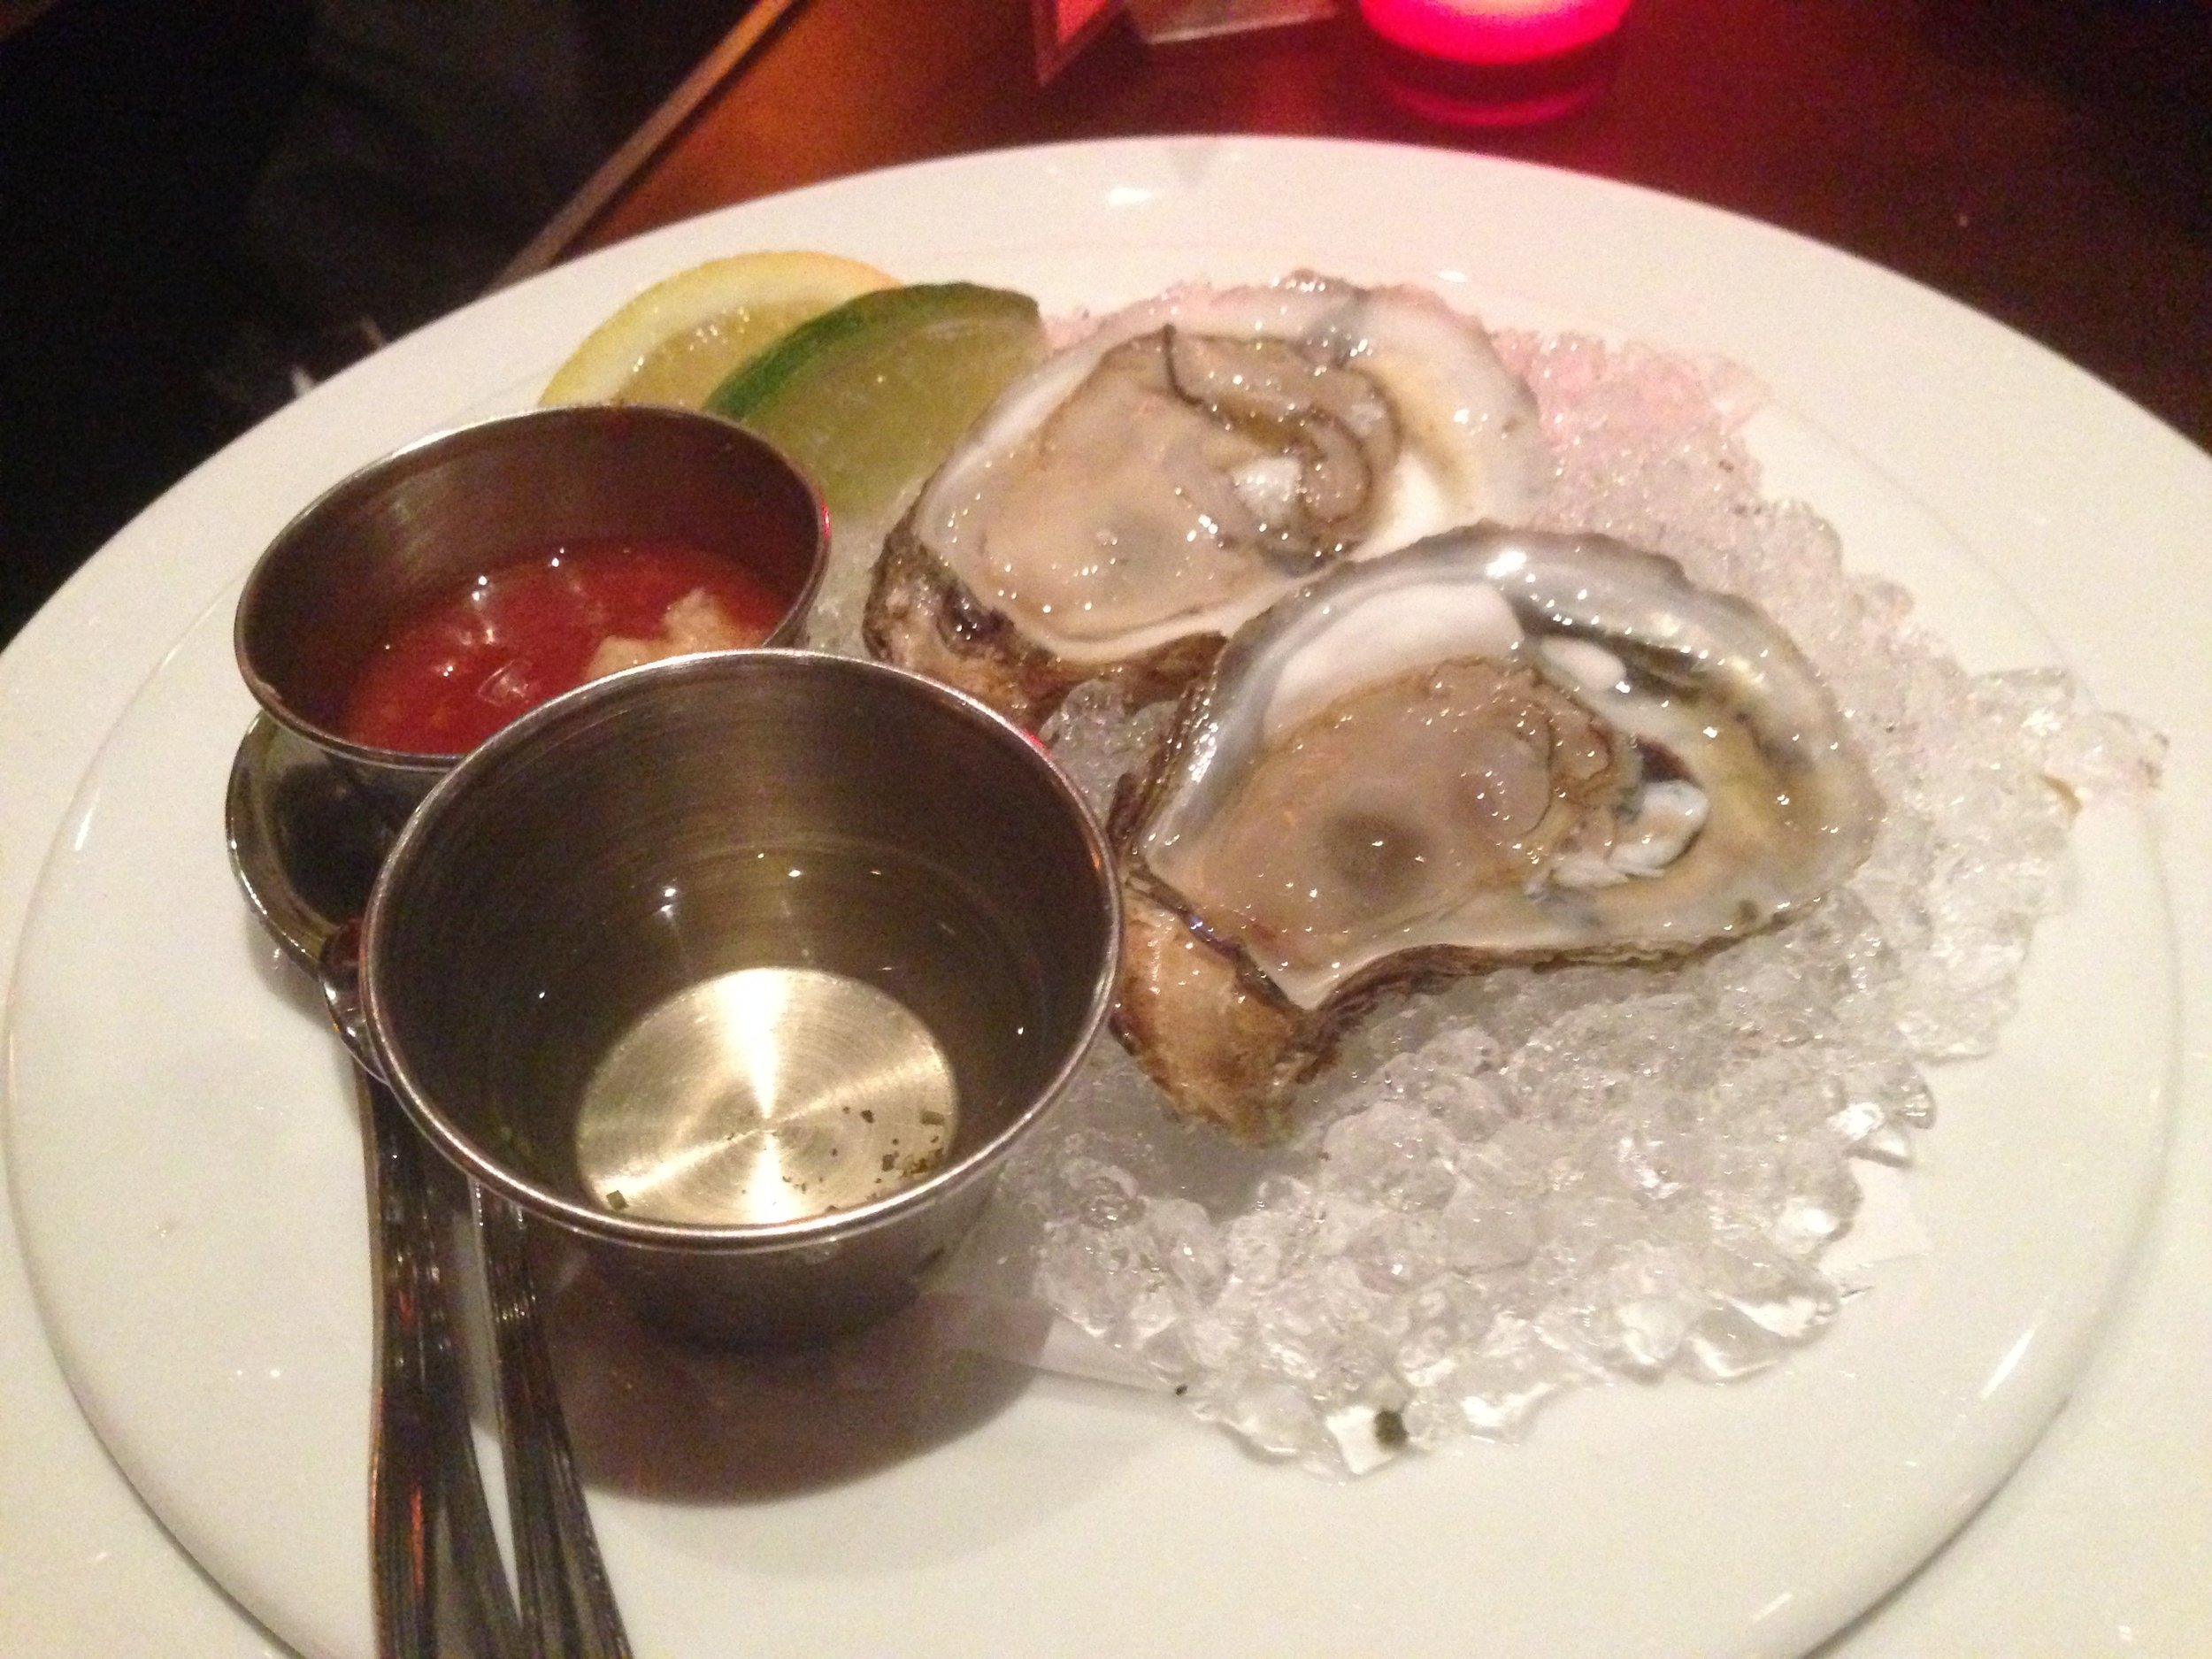 East or West Coast Oysters - you can choose from a list of different kinds